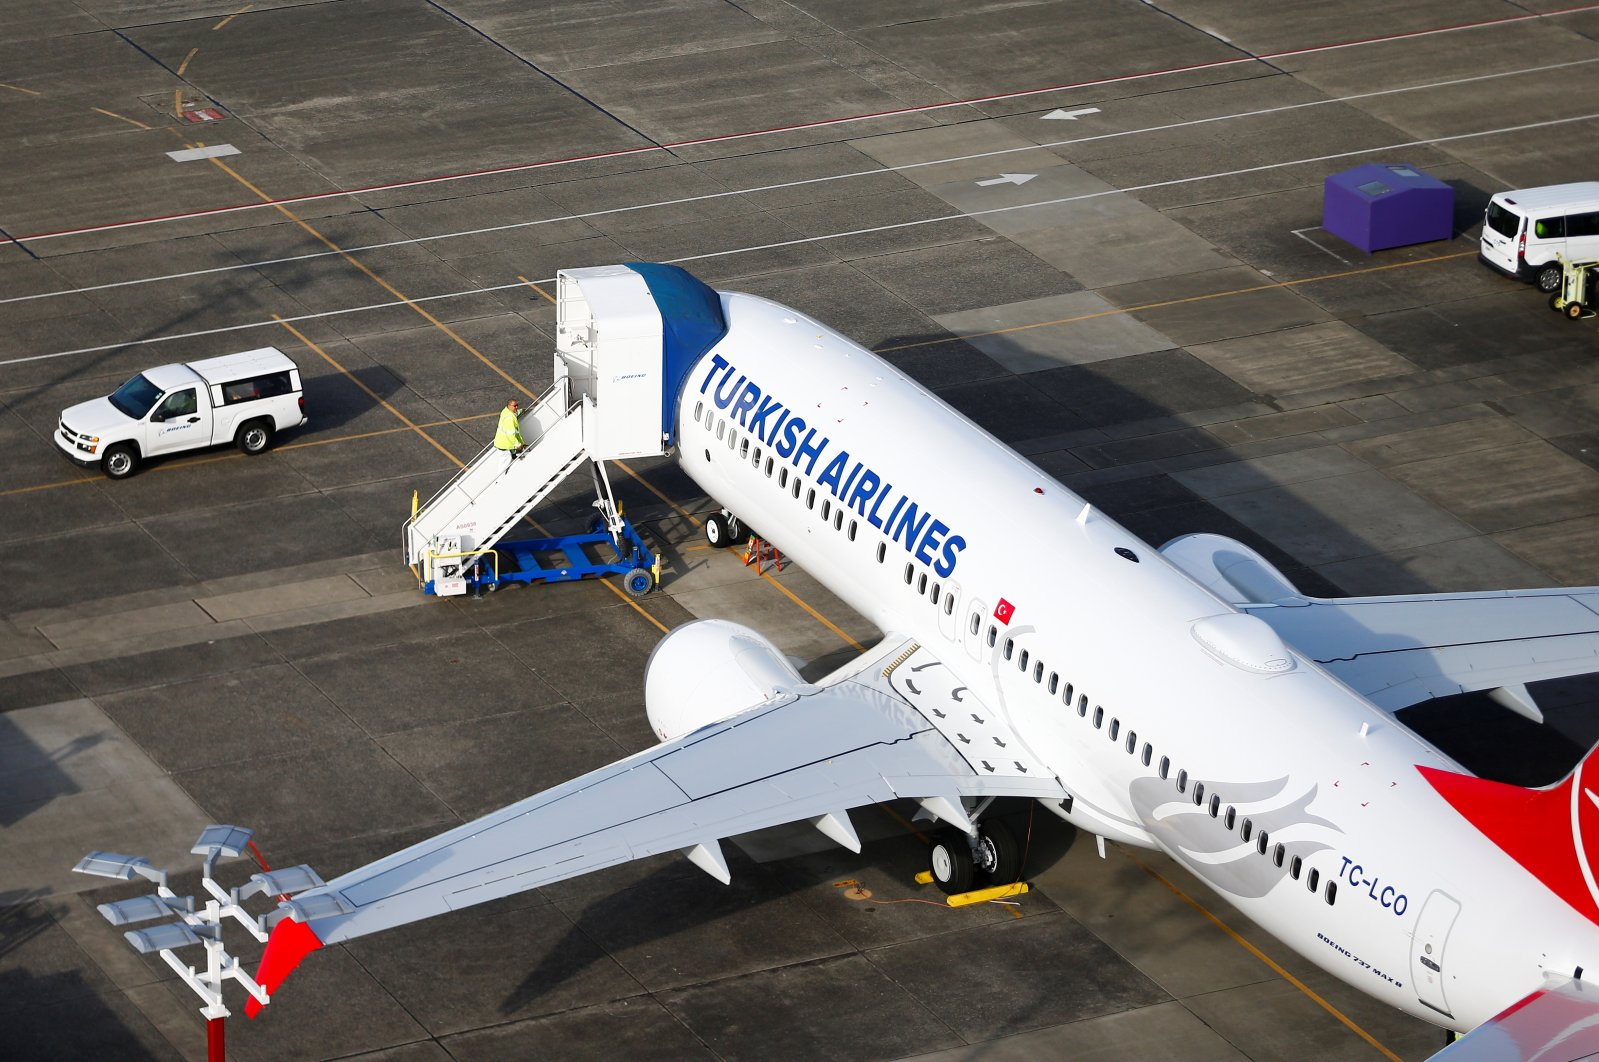 A worker climbs up to a Turkish Airlines Boeing 737 Max airplane grounded at Boeing Field in Seattle, Washington, U.S. March 21, 2019. (Reuters Photo)